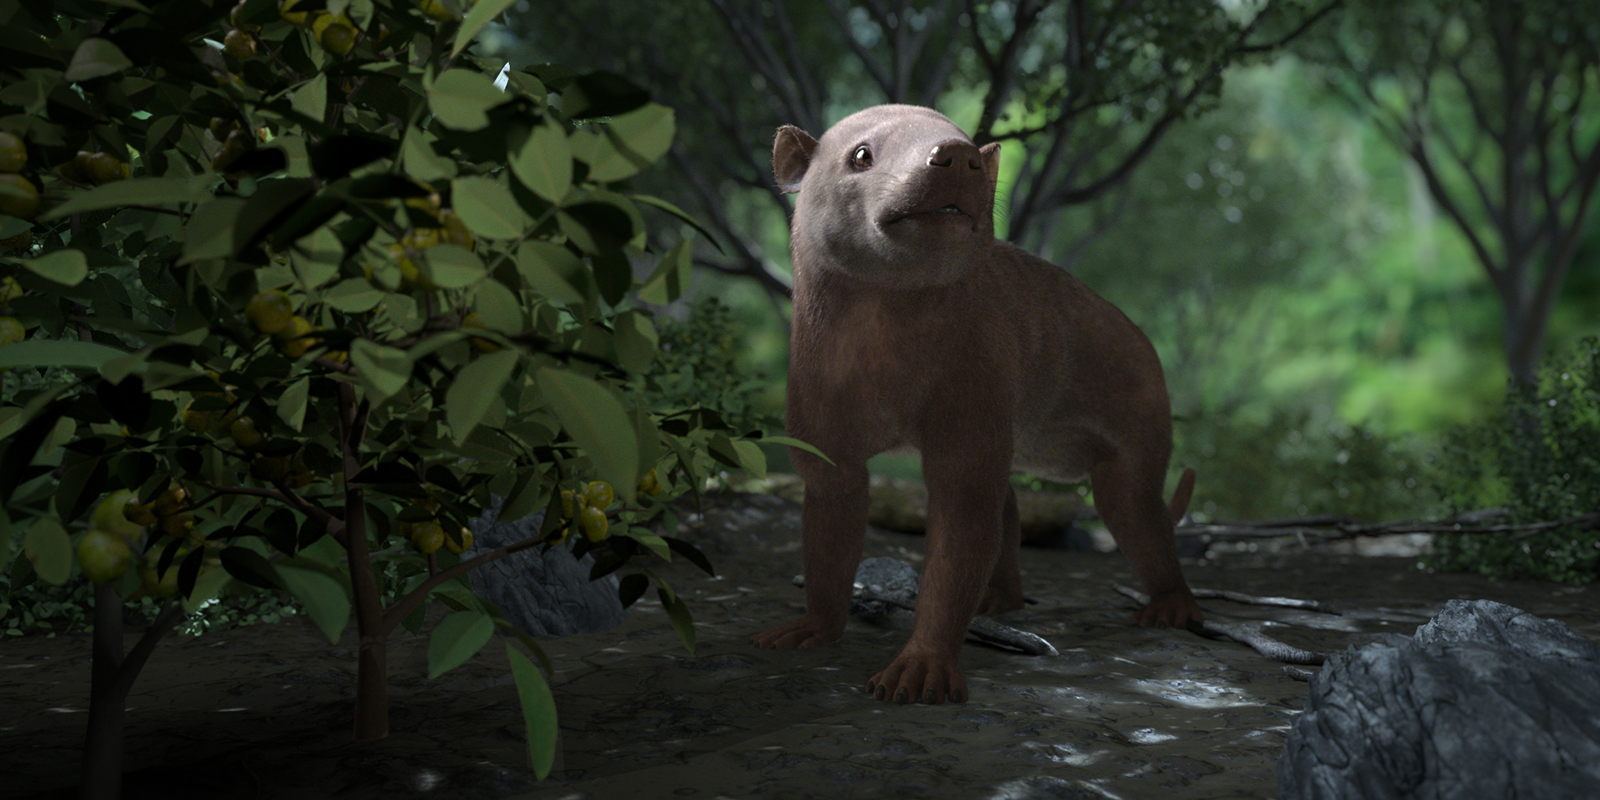 Lifelike illustration of a small prehistoric mammal